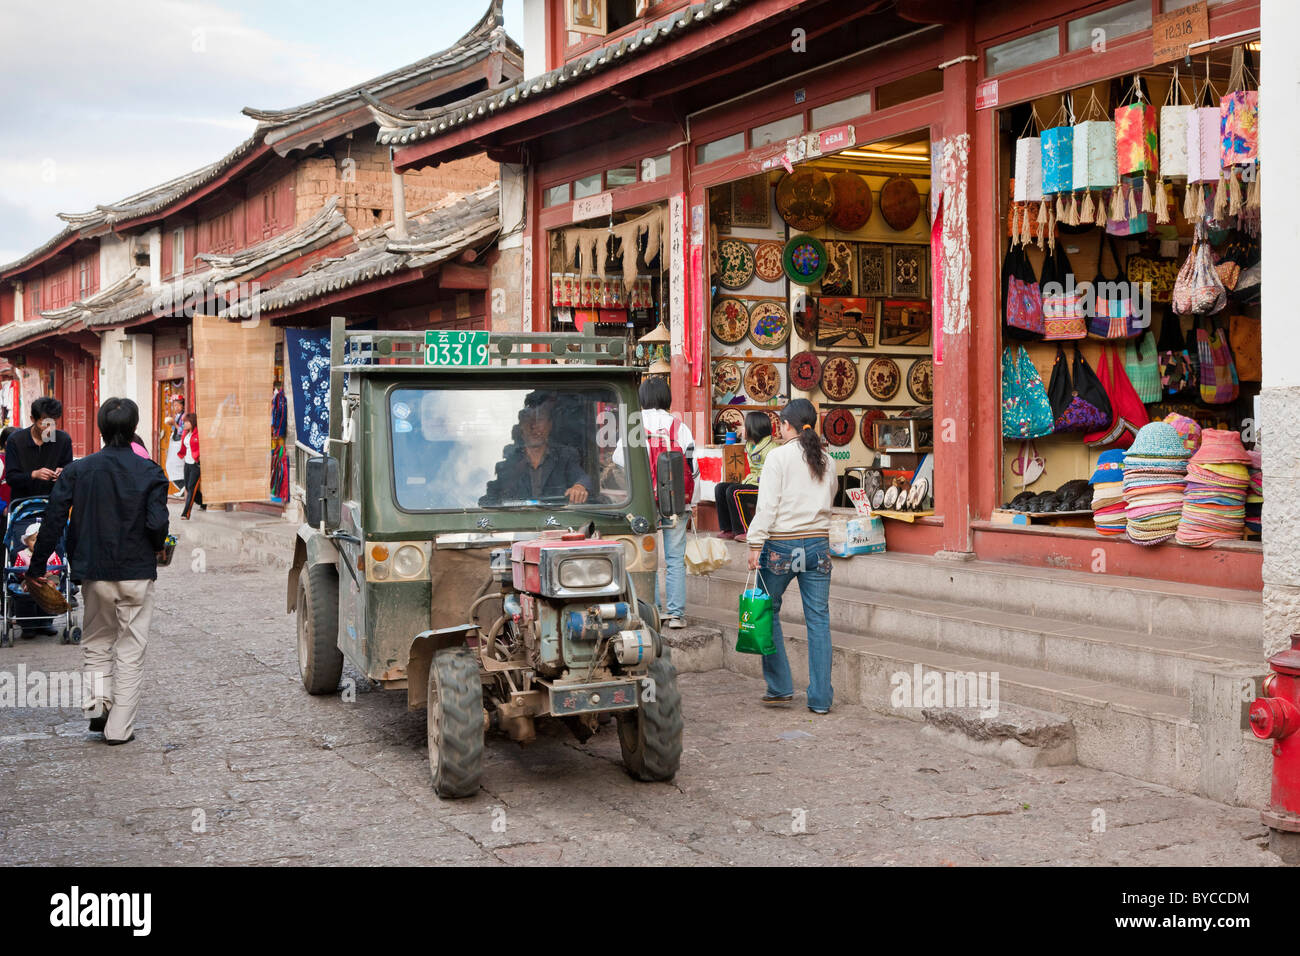 A tuk-tuk, trishaw or auto rickshaw in a narrow paved lane in Lijiang old town, Yunnan Province, China. JMH4757 - Stock Image